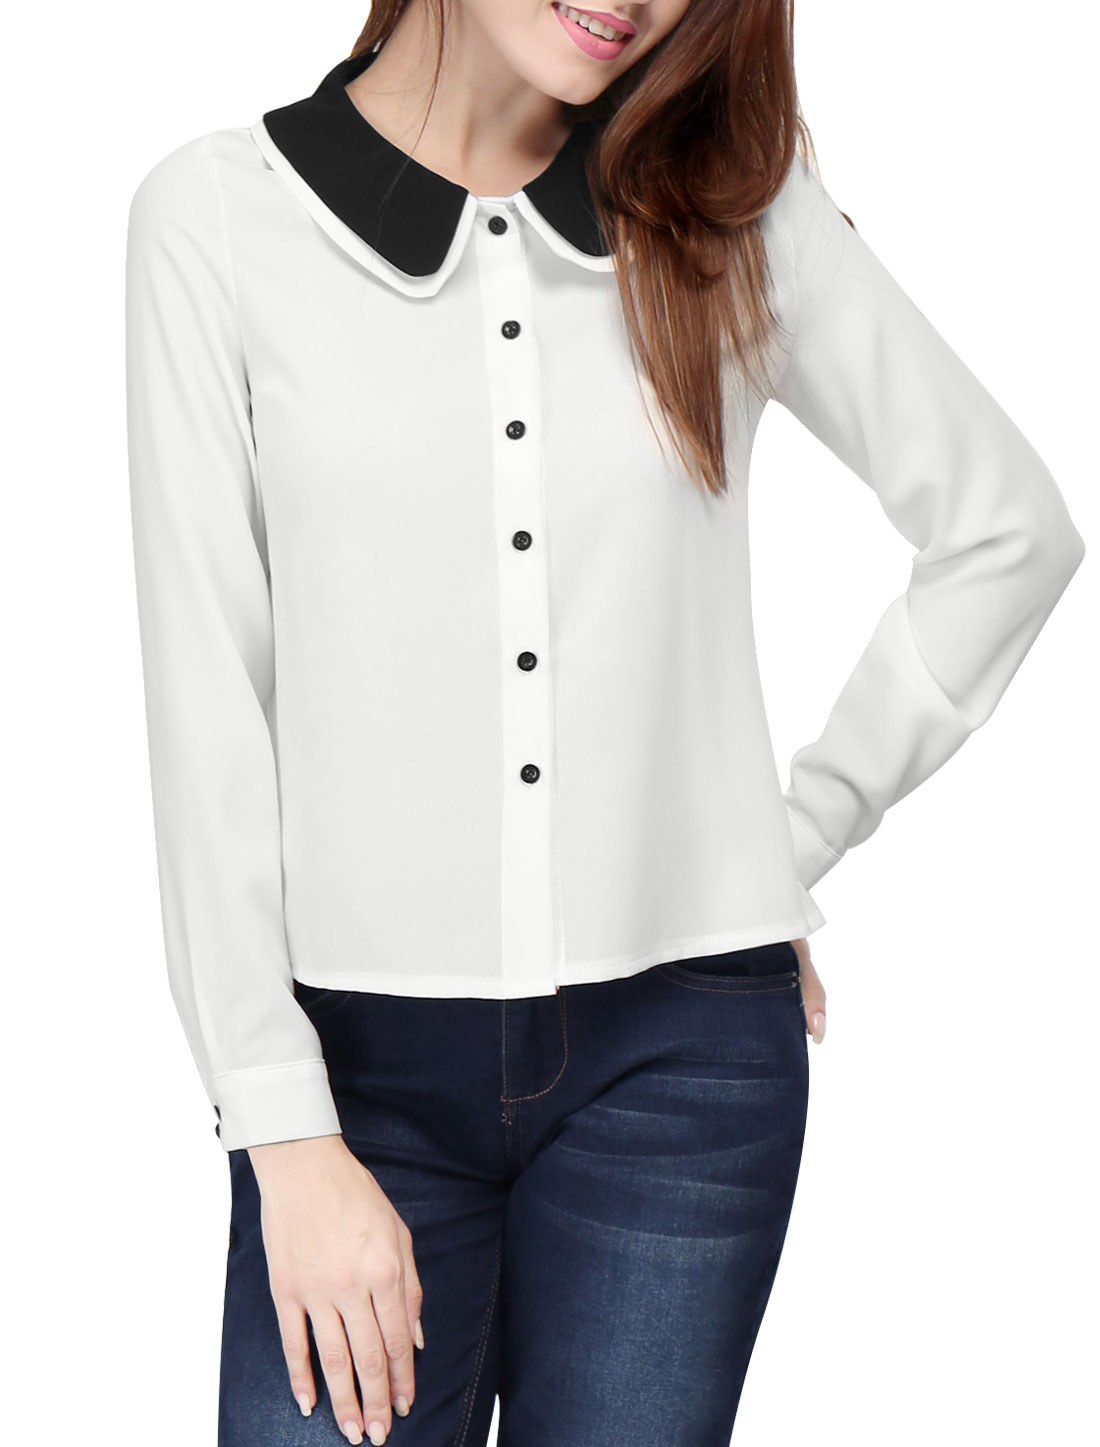 Women Double Contrast Collar Curved Hem Chiffon Button Up Blouse White S